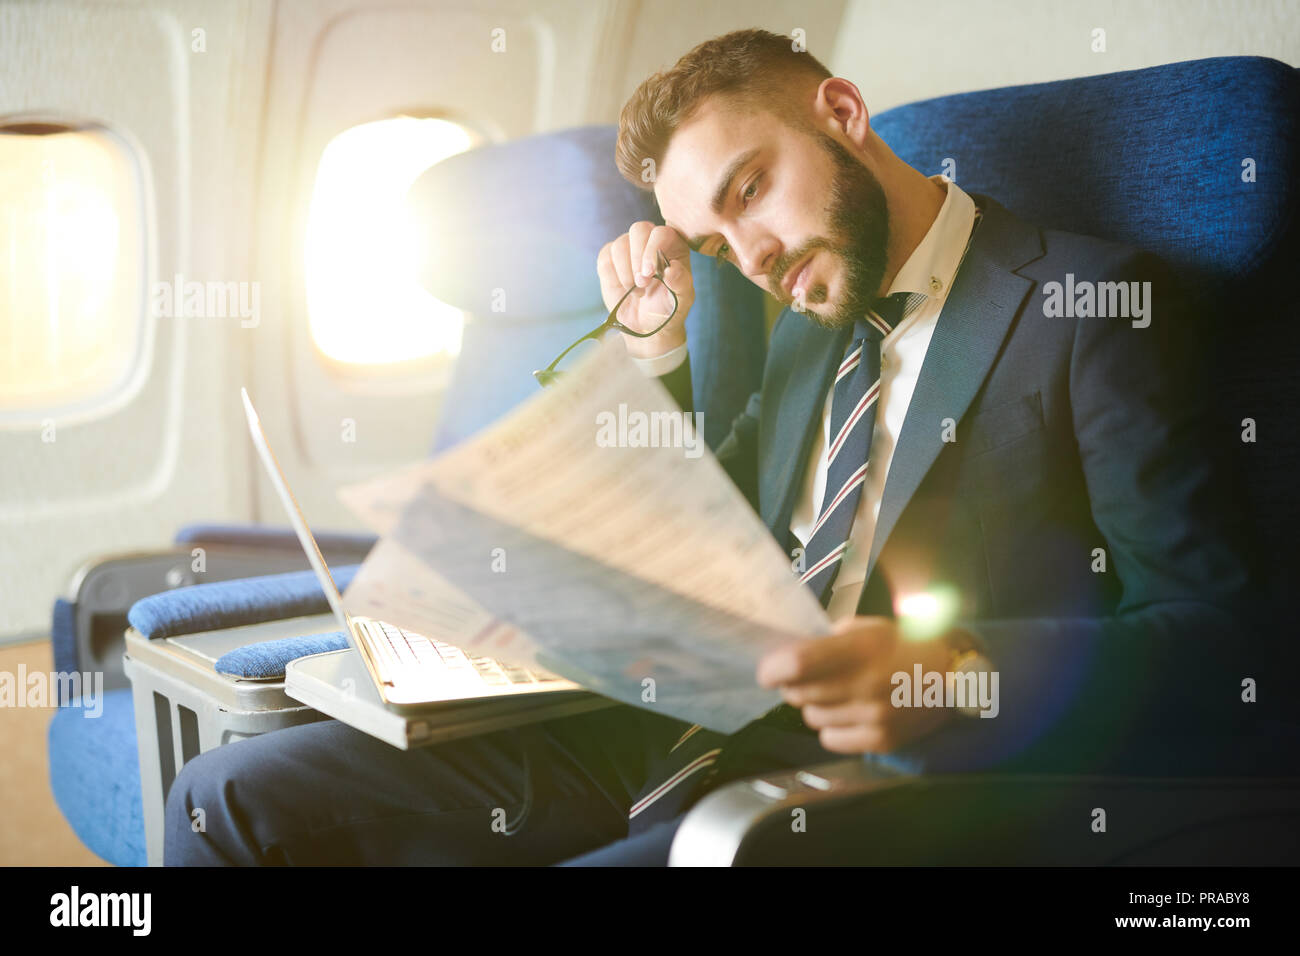 Tired Businessman Working in Plane - Stock Image